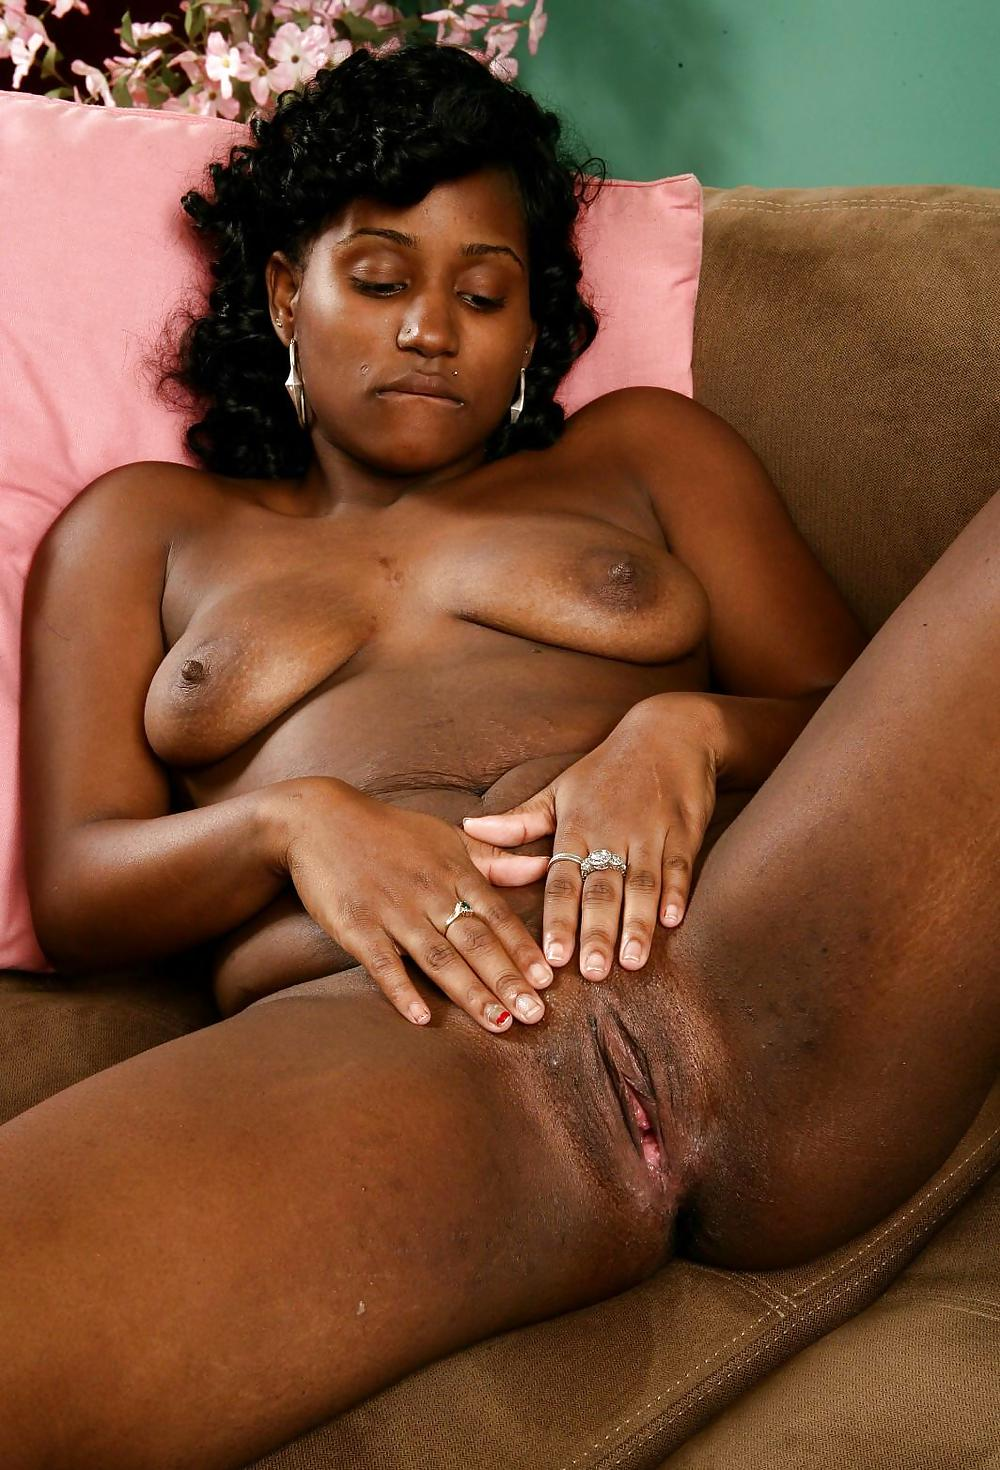 Black free gallery naked only thumbnail woman — pic 10